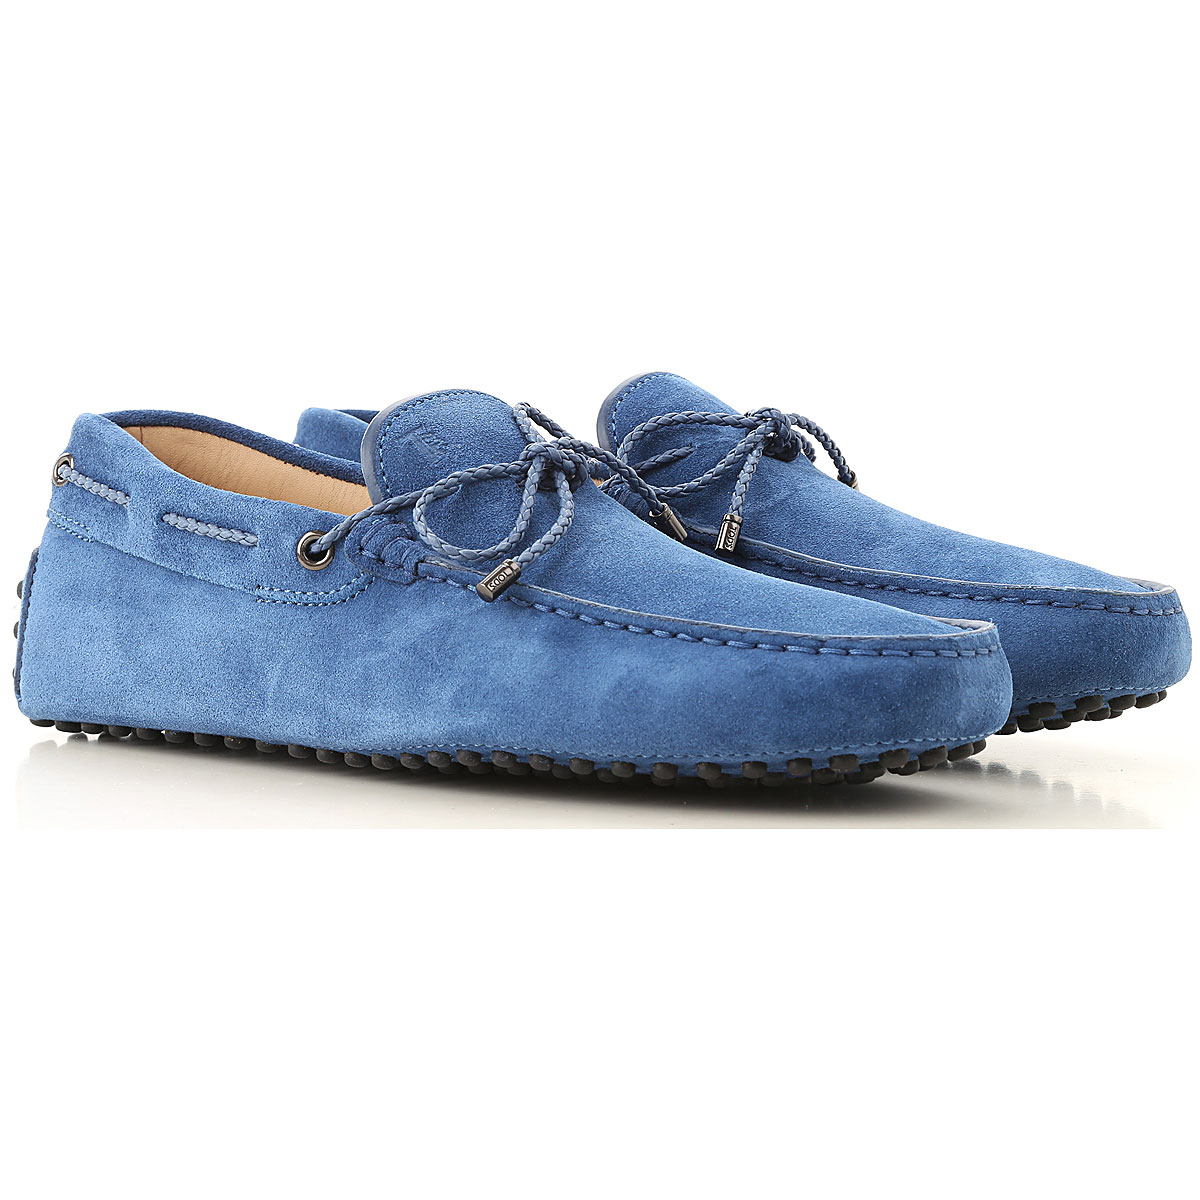 Tods Loafers for Men On Sale Bright Bluette SE - GOOFASH